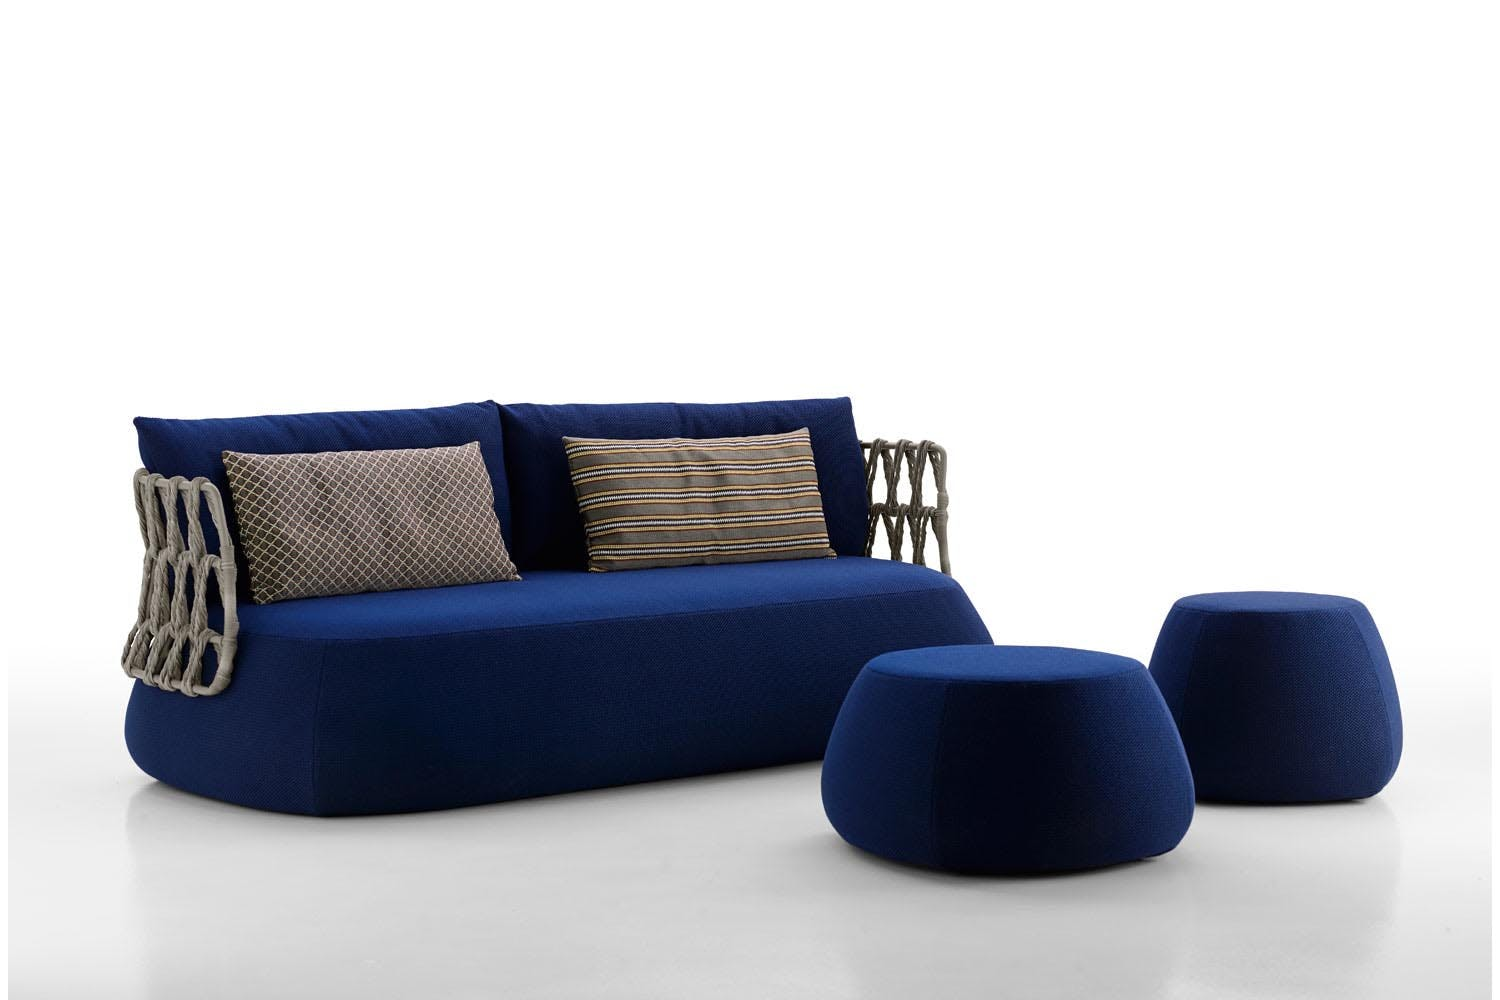 Fat sofa outdoor by patricia urquiola for b b italia for B b italia outdoor